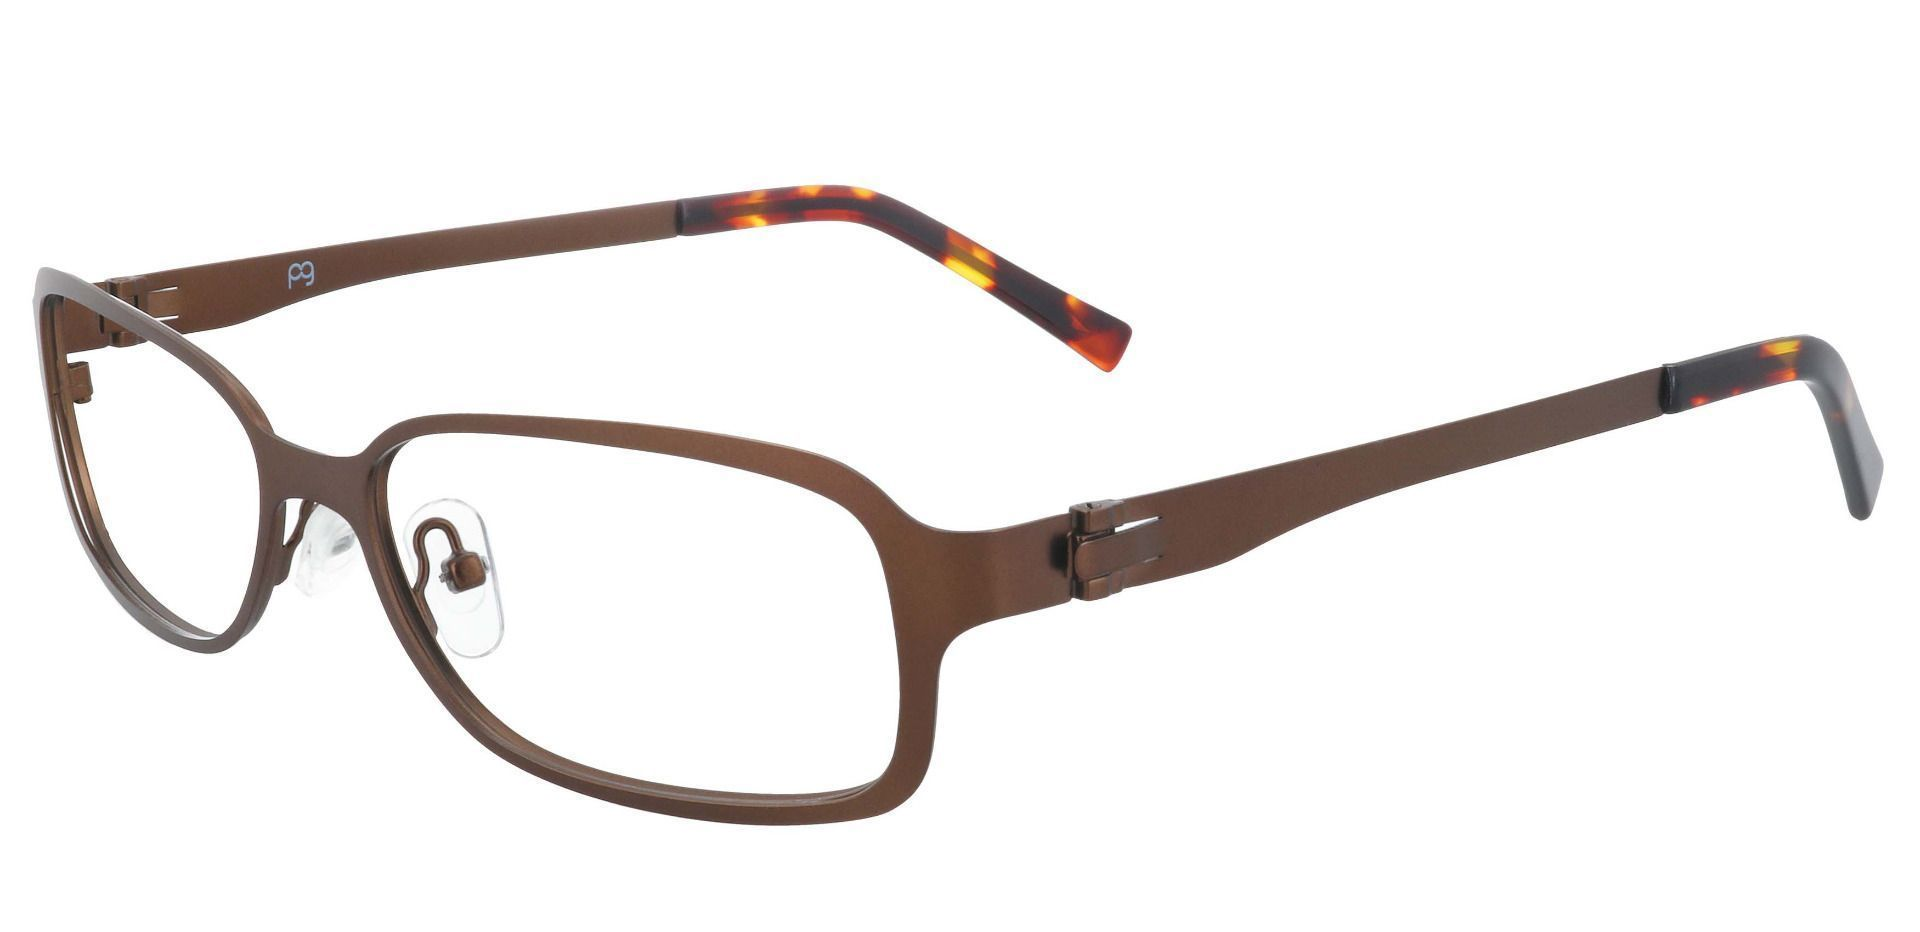 Constable Rectangle Single Vision Glasses - Brown